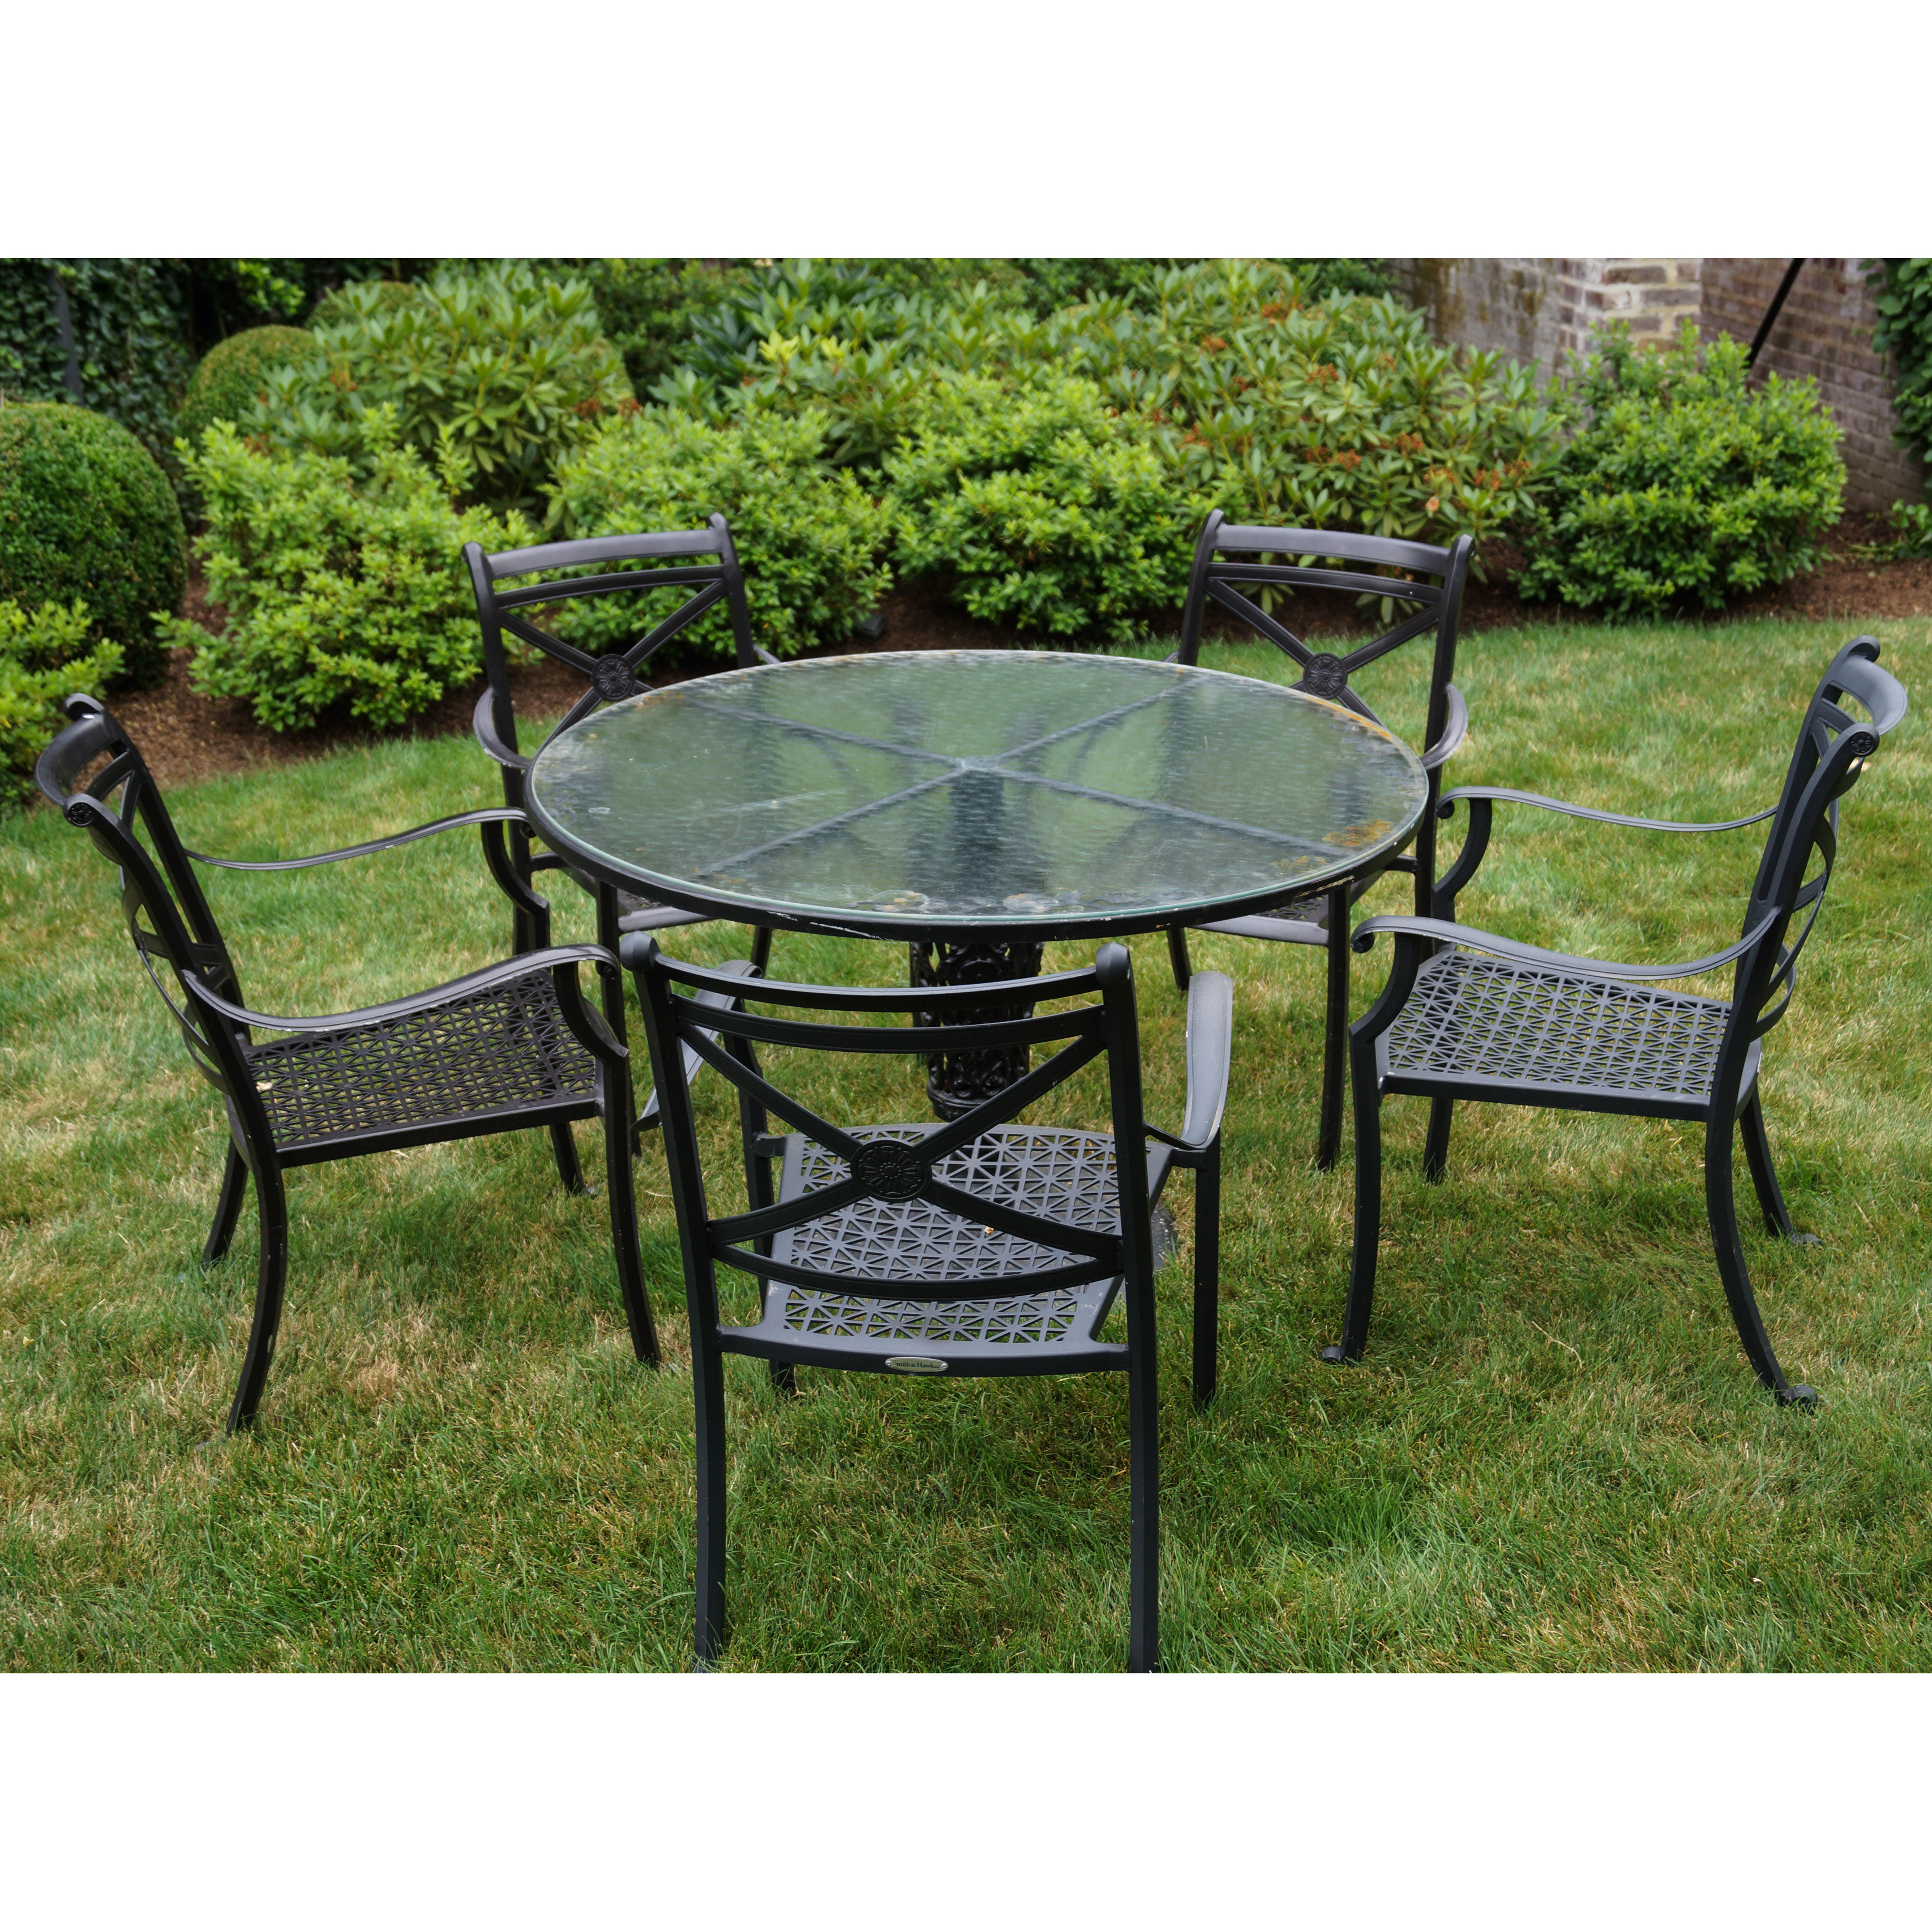 Smith & Hawken Outdoor Glass Topped Iron Table with Chairs